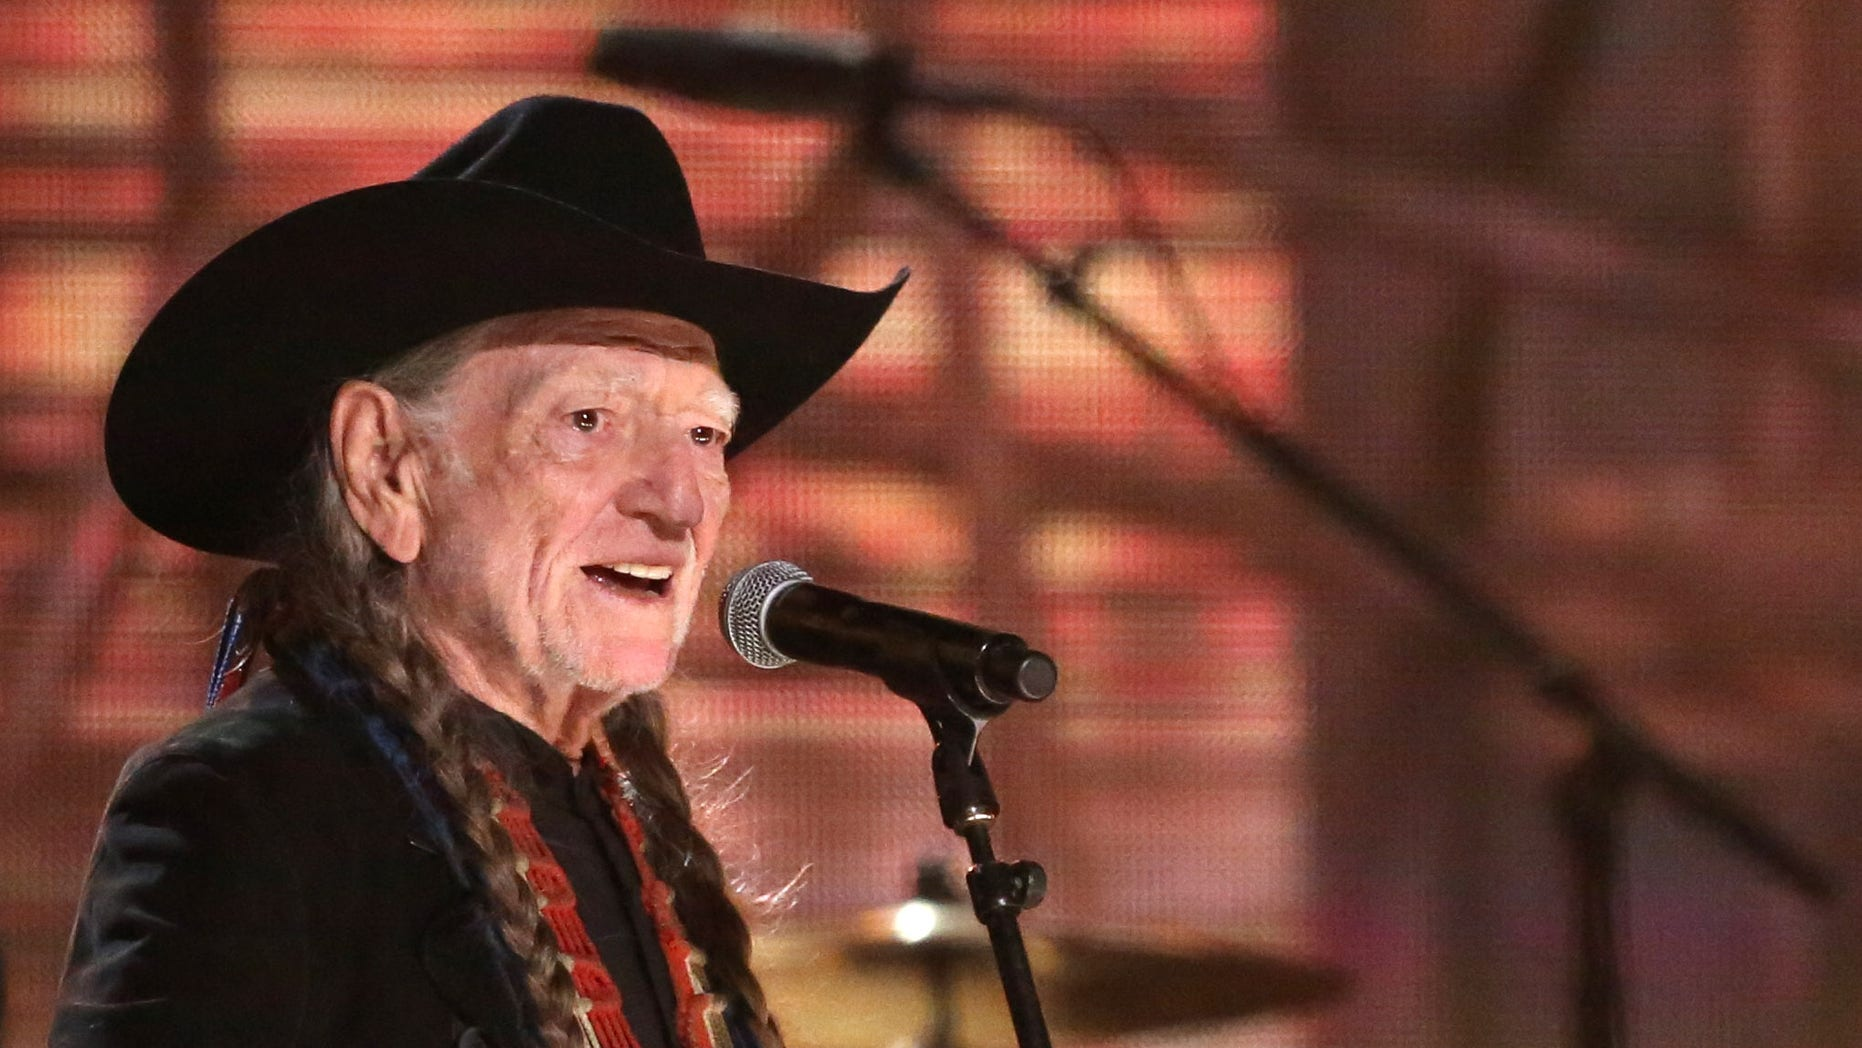 Willie Nelson performs on stage at the 56th annual Grammy Awards at Staples Center on Sunday, Jan. 26, 2014, in Los Angeles. (Photo by Matt Sayles/Invision/AP)